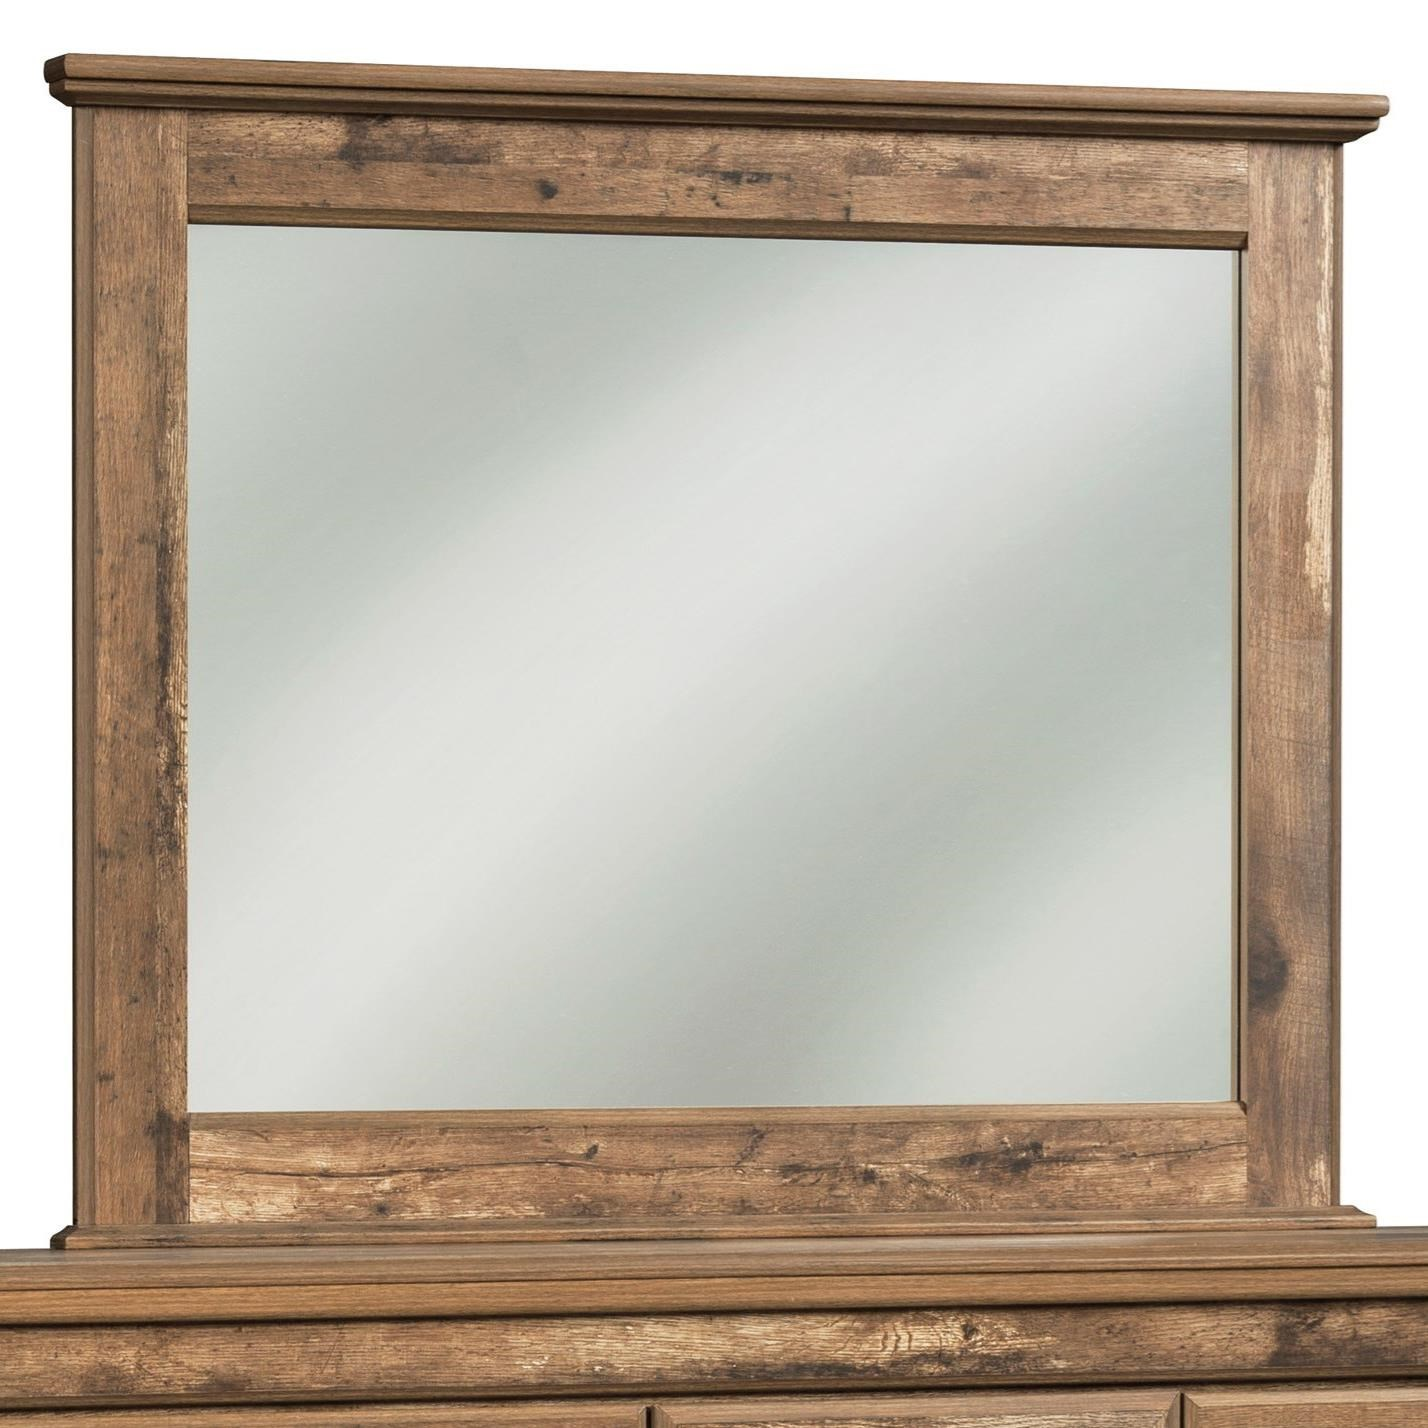 Blaneville Bedroom Mirror by Ashley (Signature Design) at Johnny Janosik